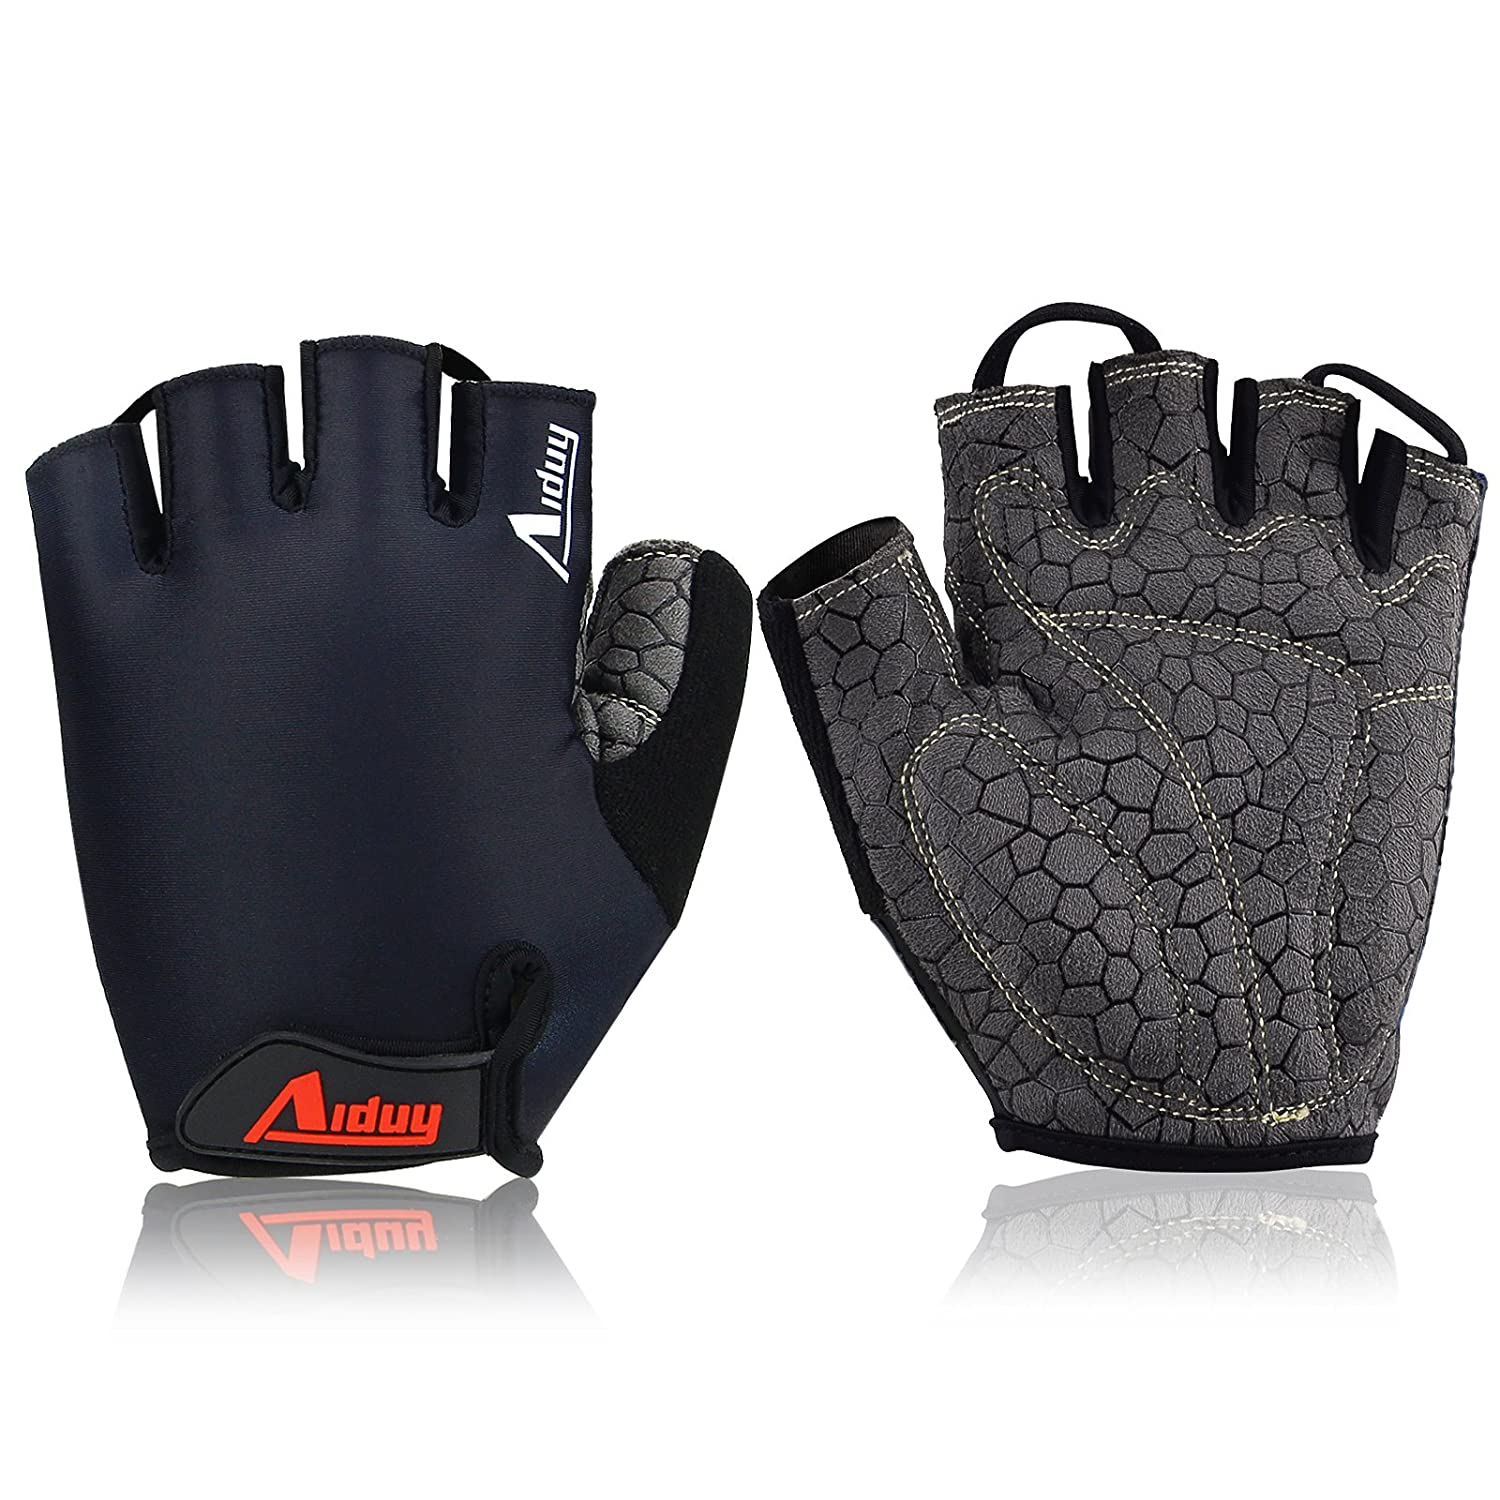 Ladies leather cycling gloves - Aiduy Cycling Gloves